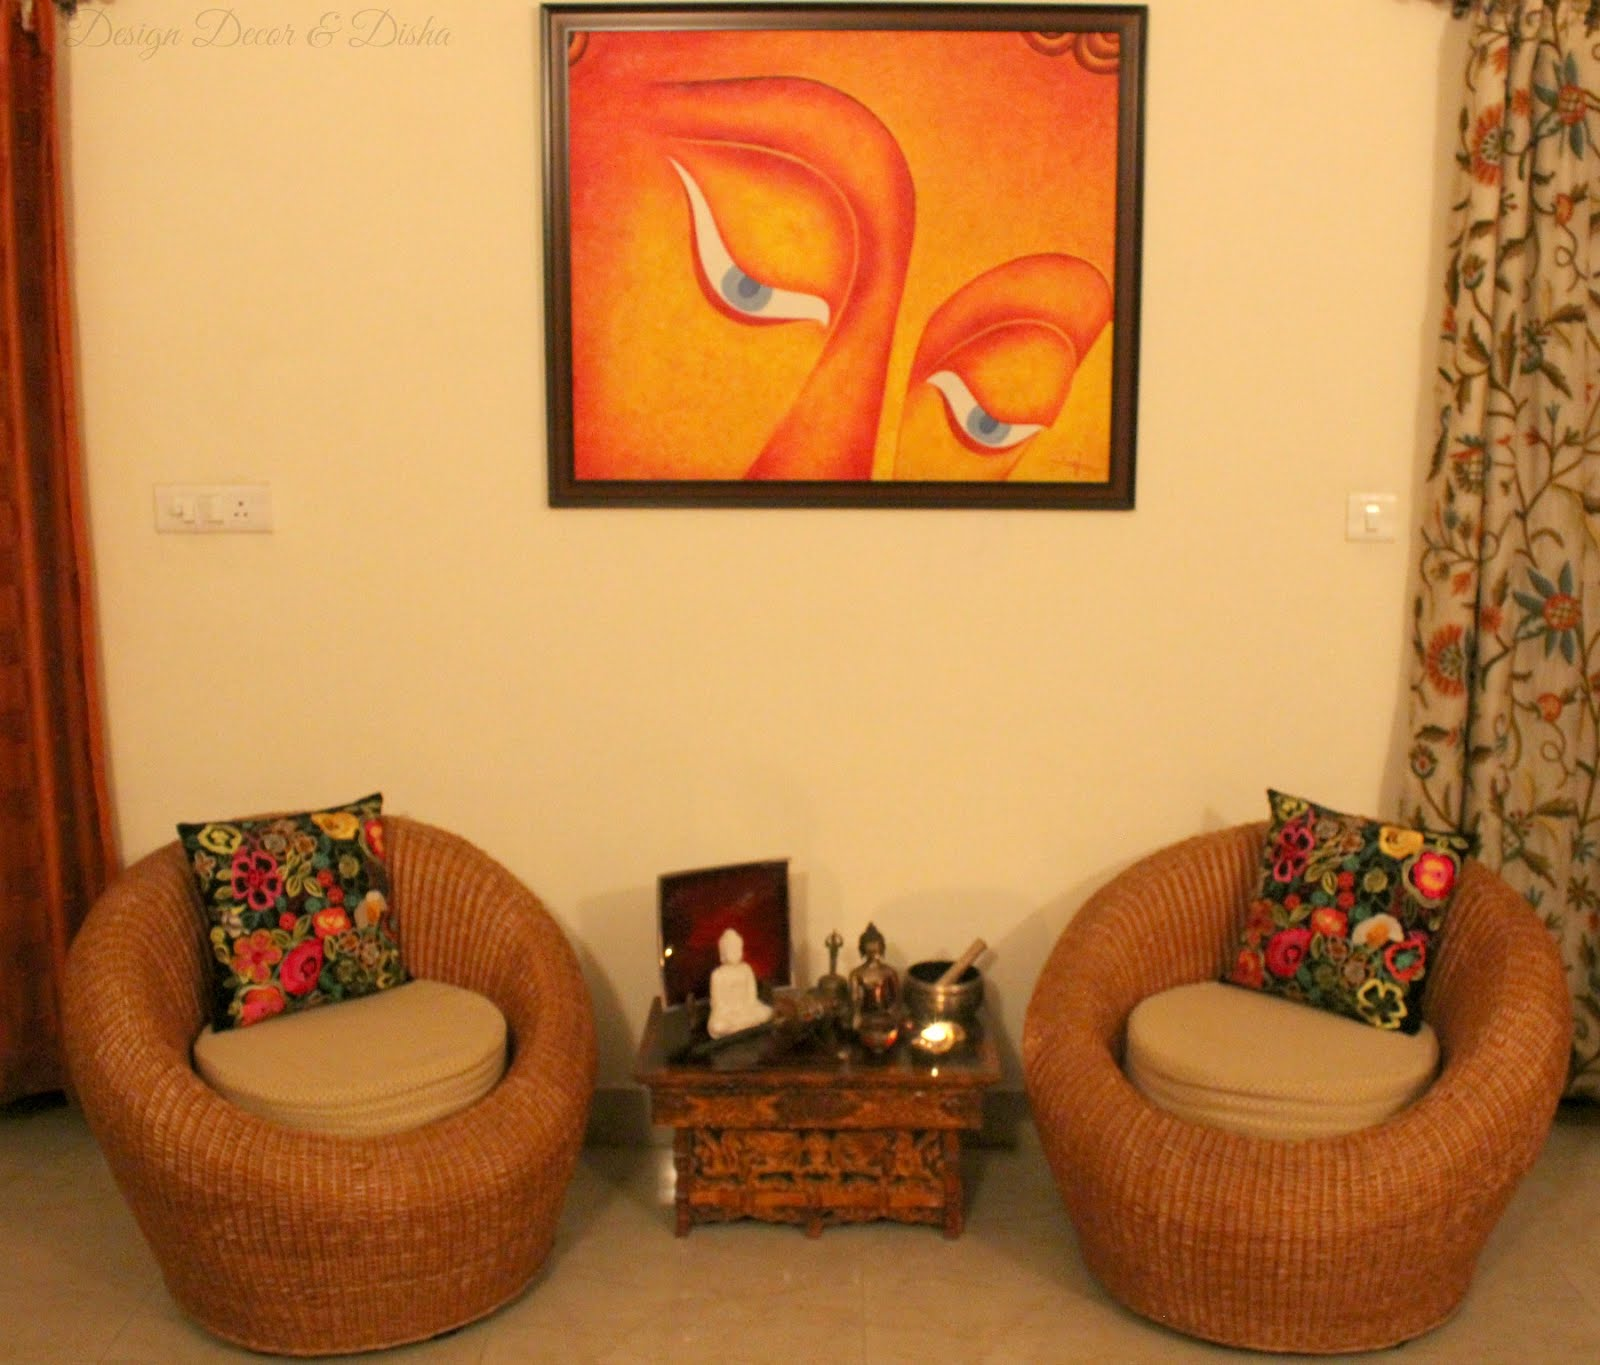 Home Design Ideas Blog: An Indian Design & Decor Blog: Home